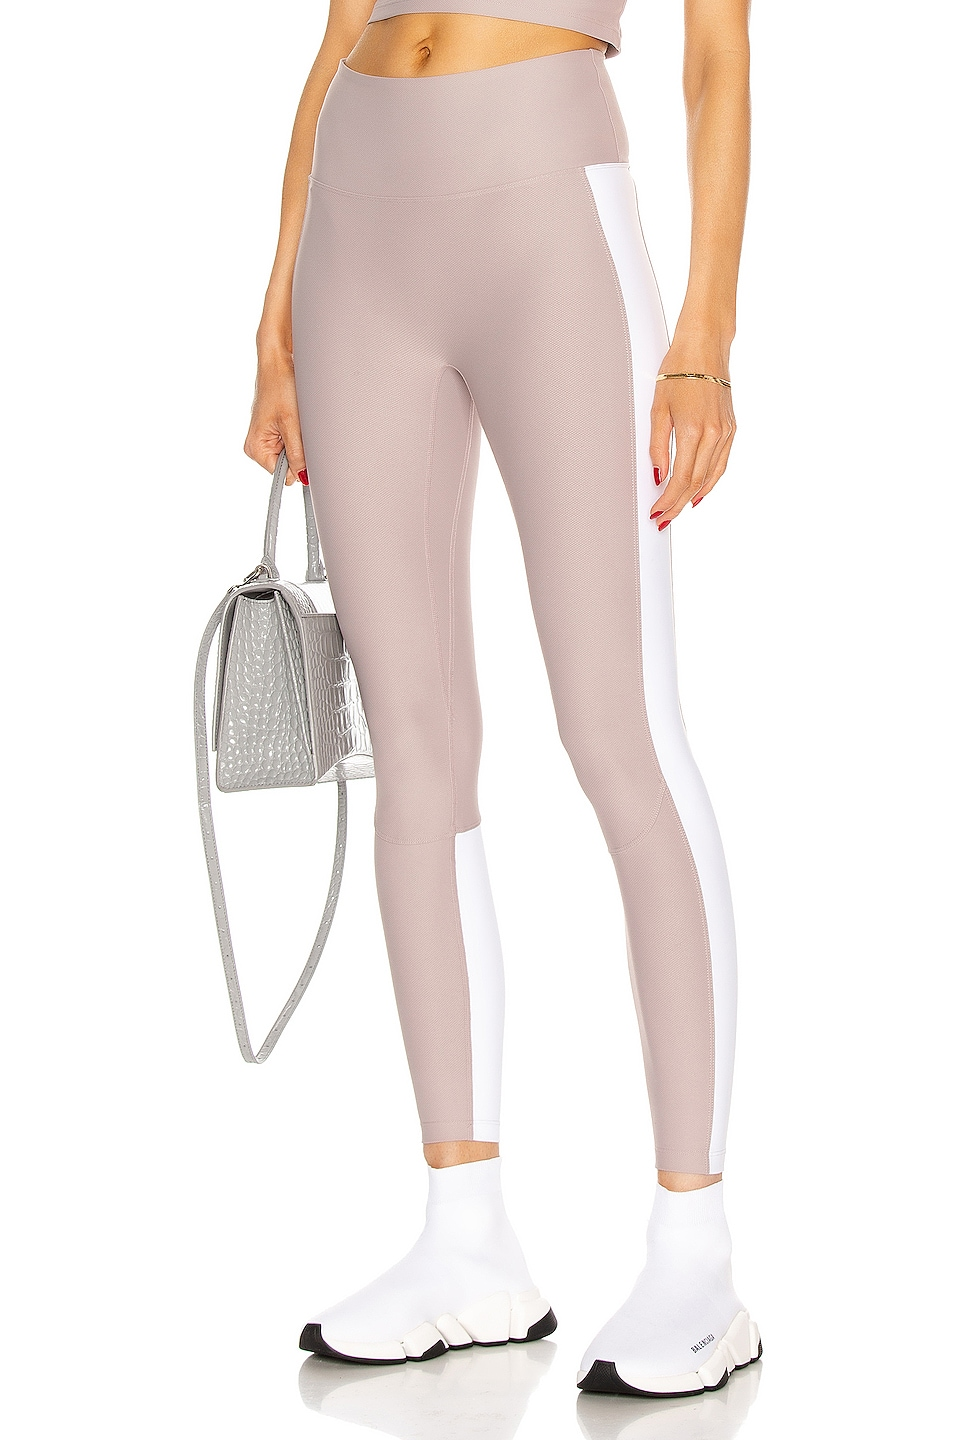 Image 1 of Nylora Levee Legging in Mauve & White Combo